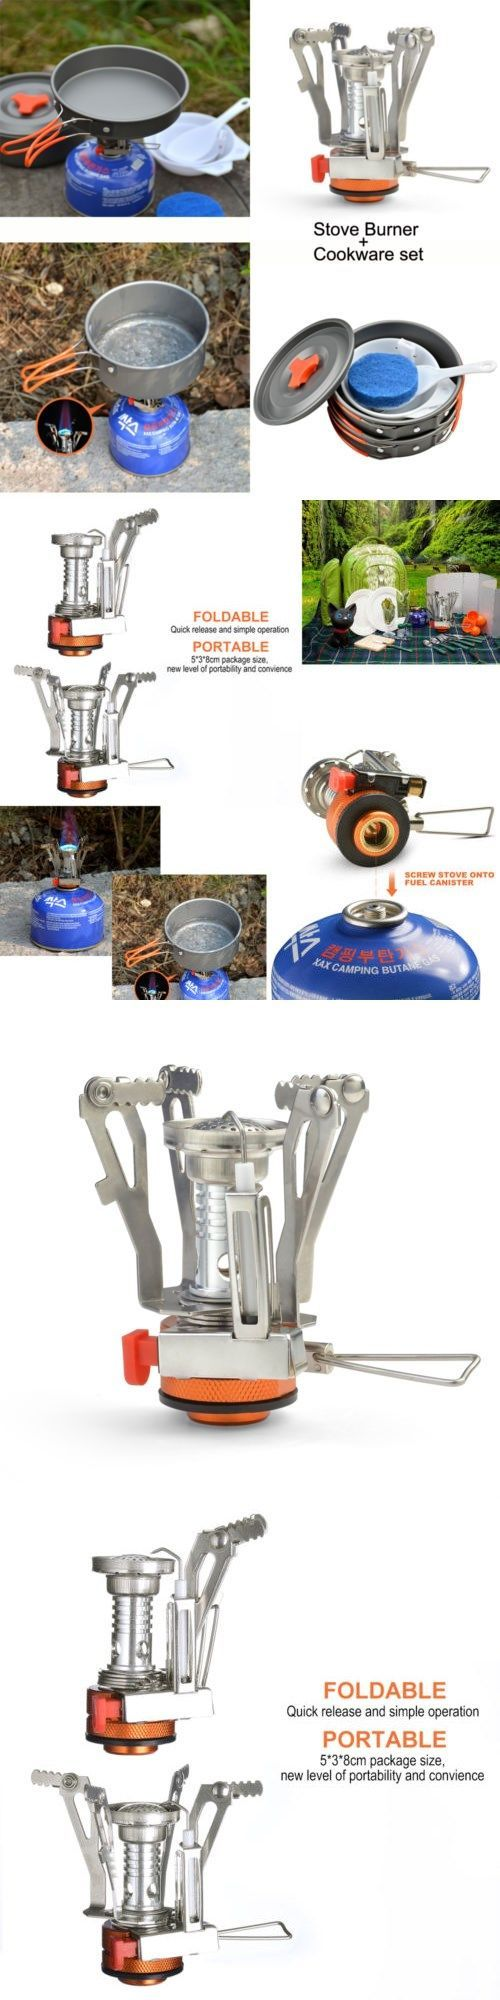 Camping Stoves 181386: Camping Stove Pot Pan Kit For Outdoor Backpacking Gearandhiking Cooking Equipment -> BUY IT NOW ONLY: $30.99 on eBay!